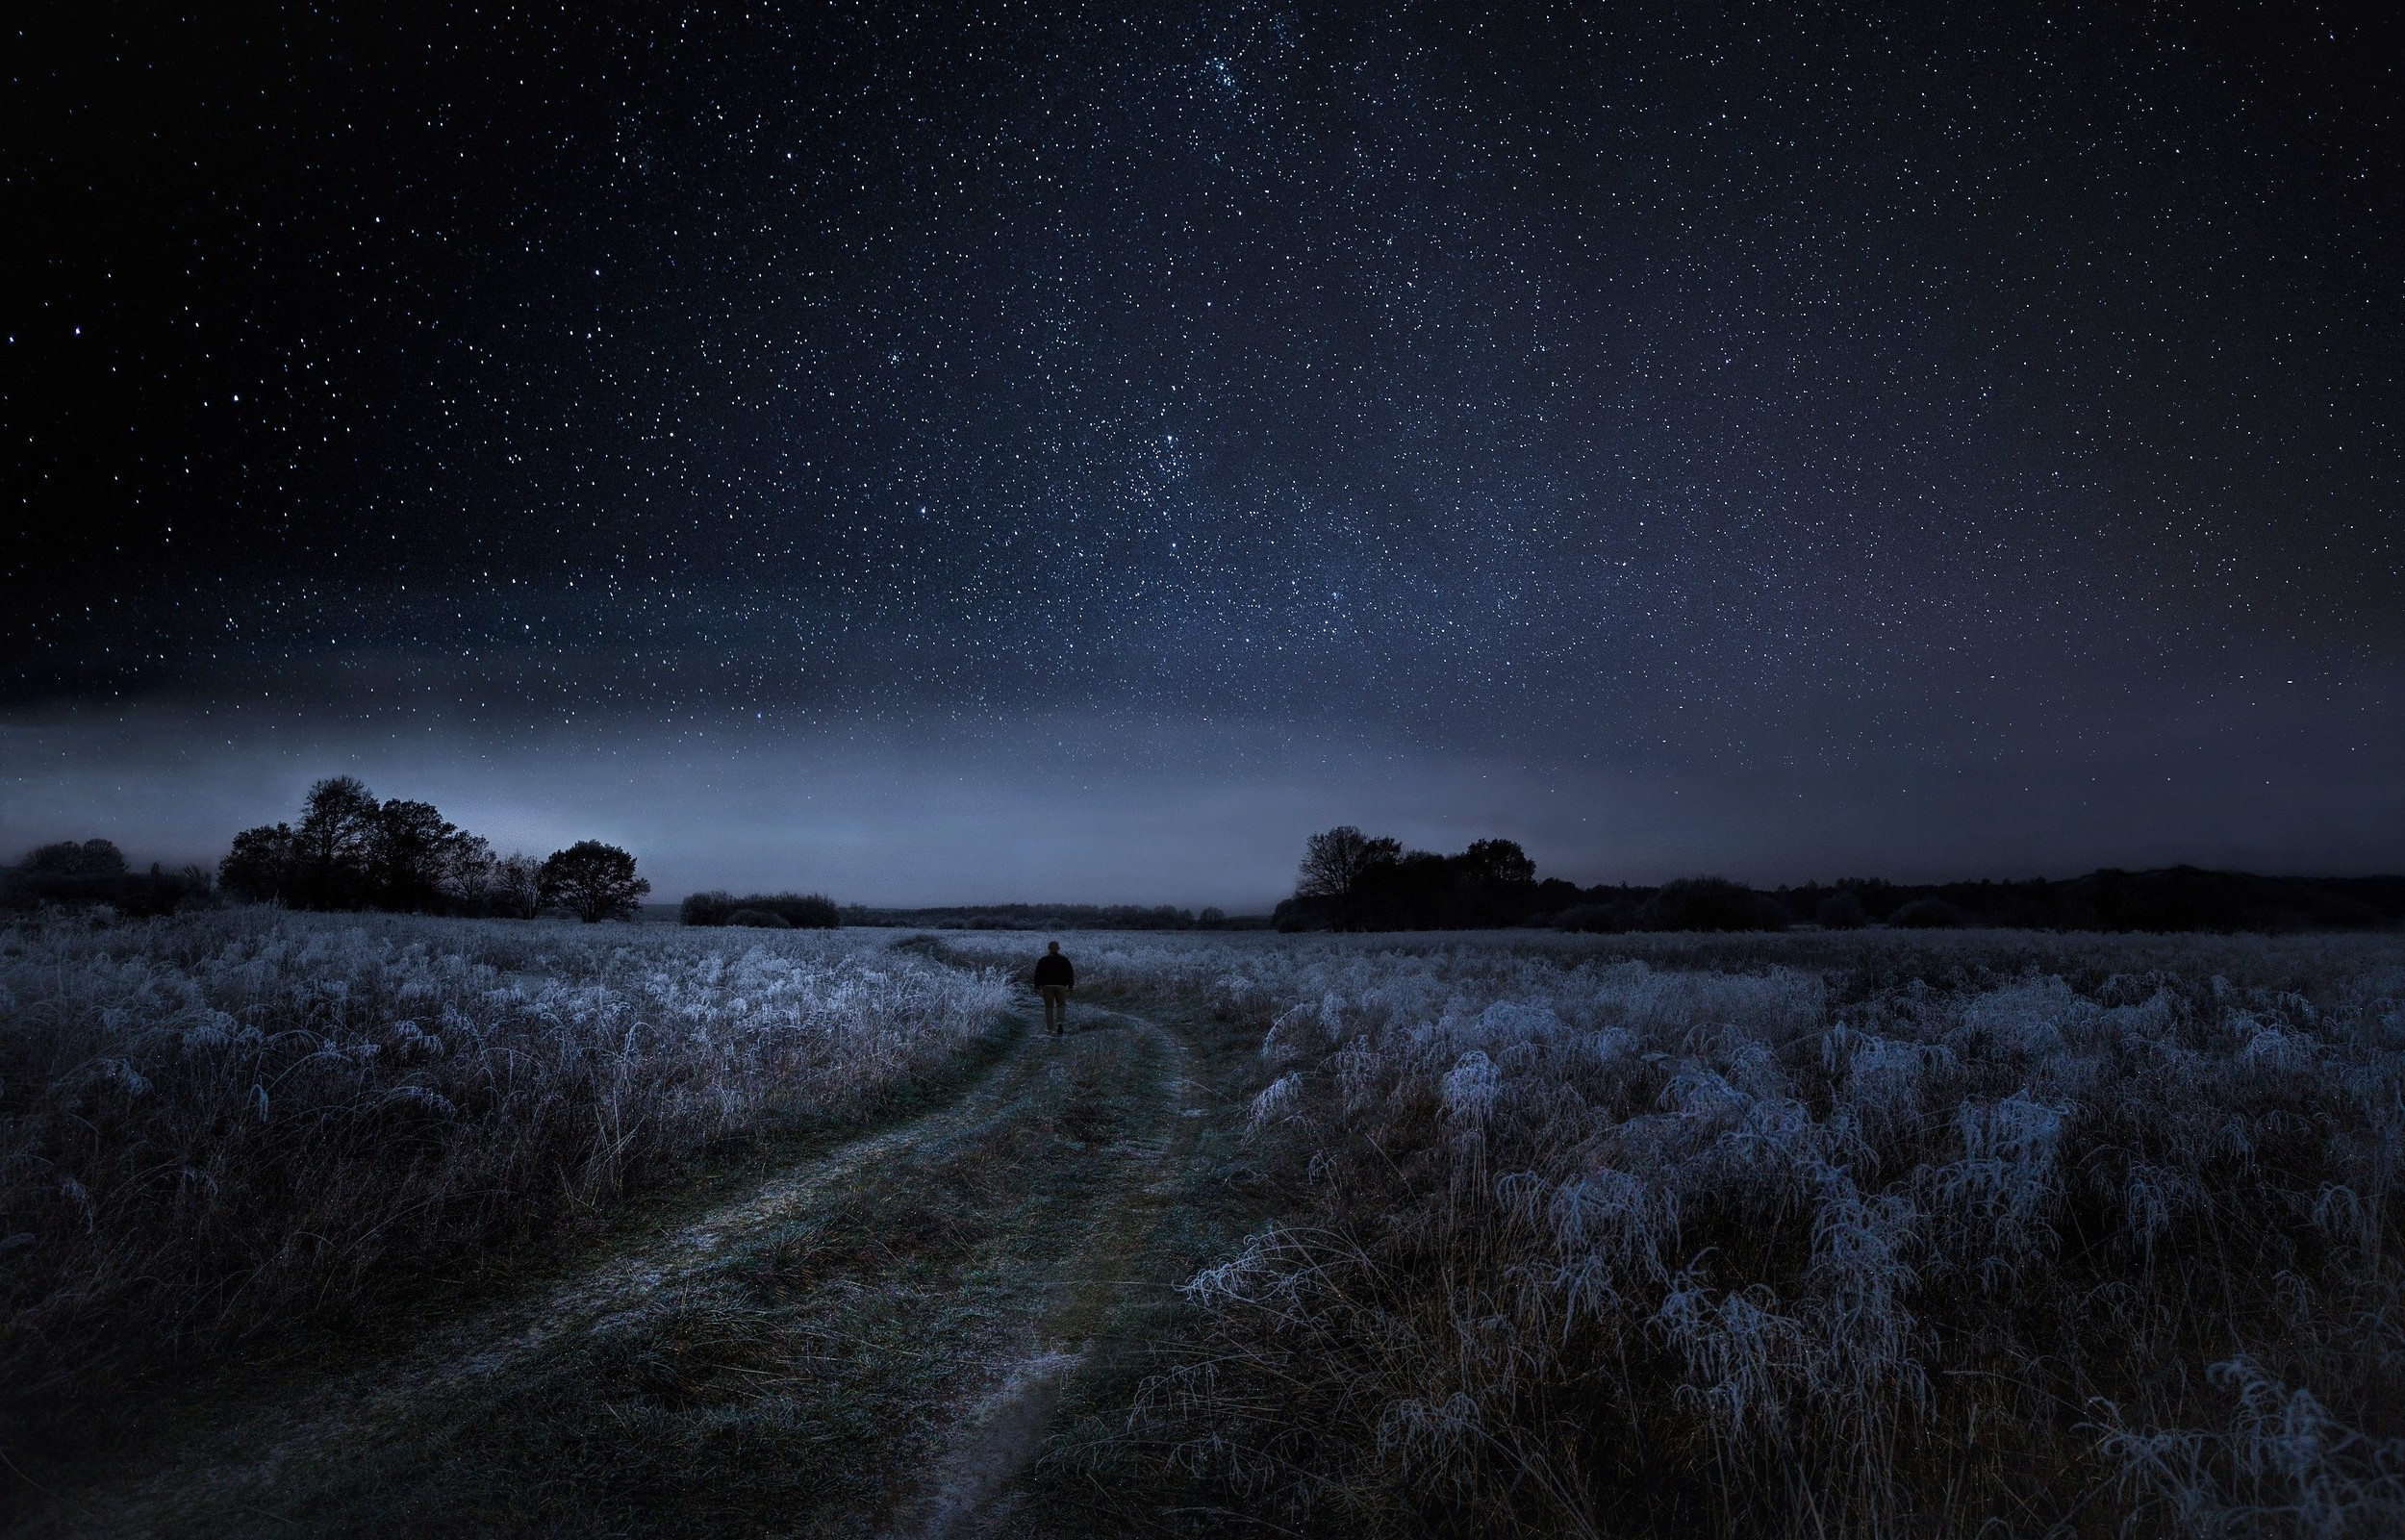 2500x1601 walking, Nature, Landscape, Starry Night, Dirt Road, Frost, Shrubs, Field,  Trees, Moonlight Wallpapers HD / Desktop and Mobile Backgrounds